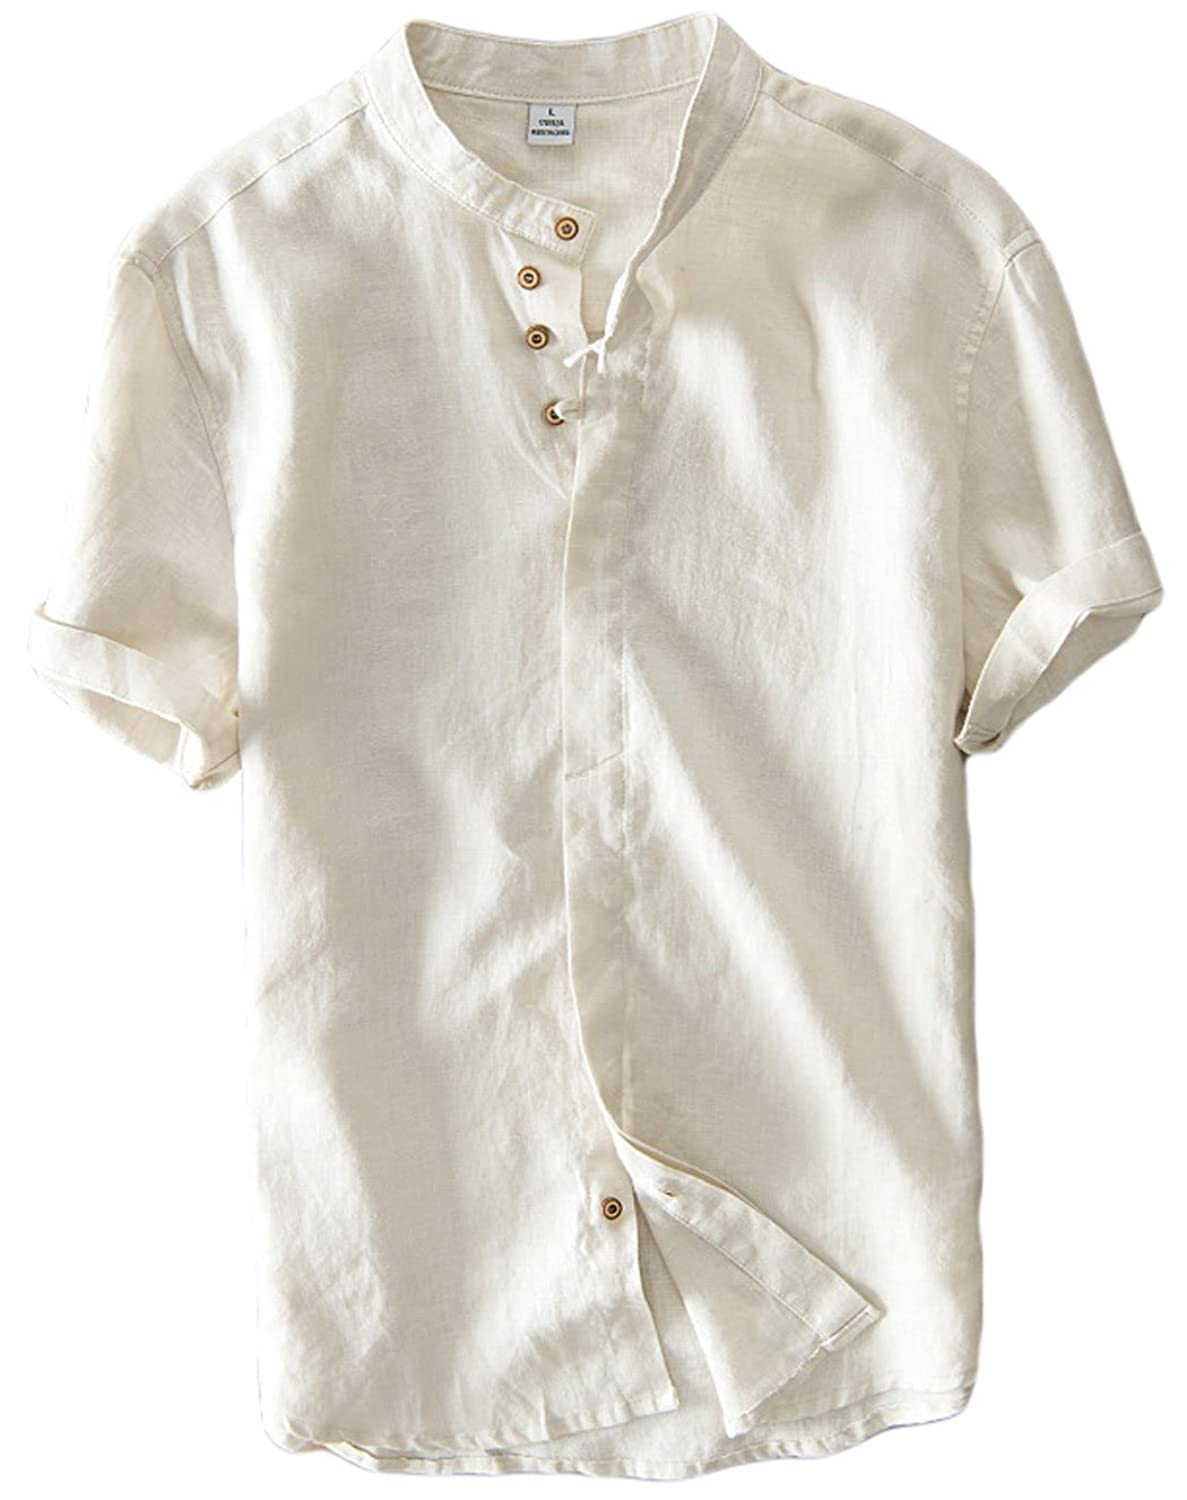 db47456f8 Color: white/khaki/navy blue. Features: front invisible buttons closure,  band collar(collarless), rolled short sleeves, straight fit